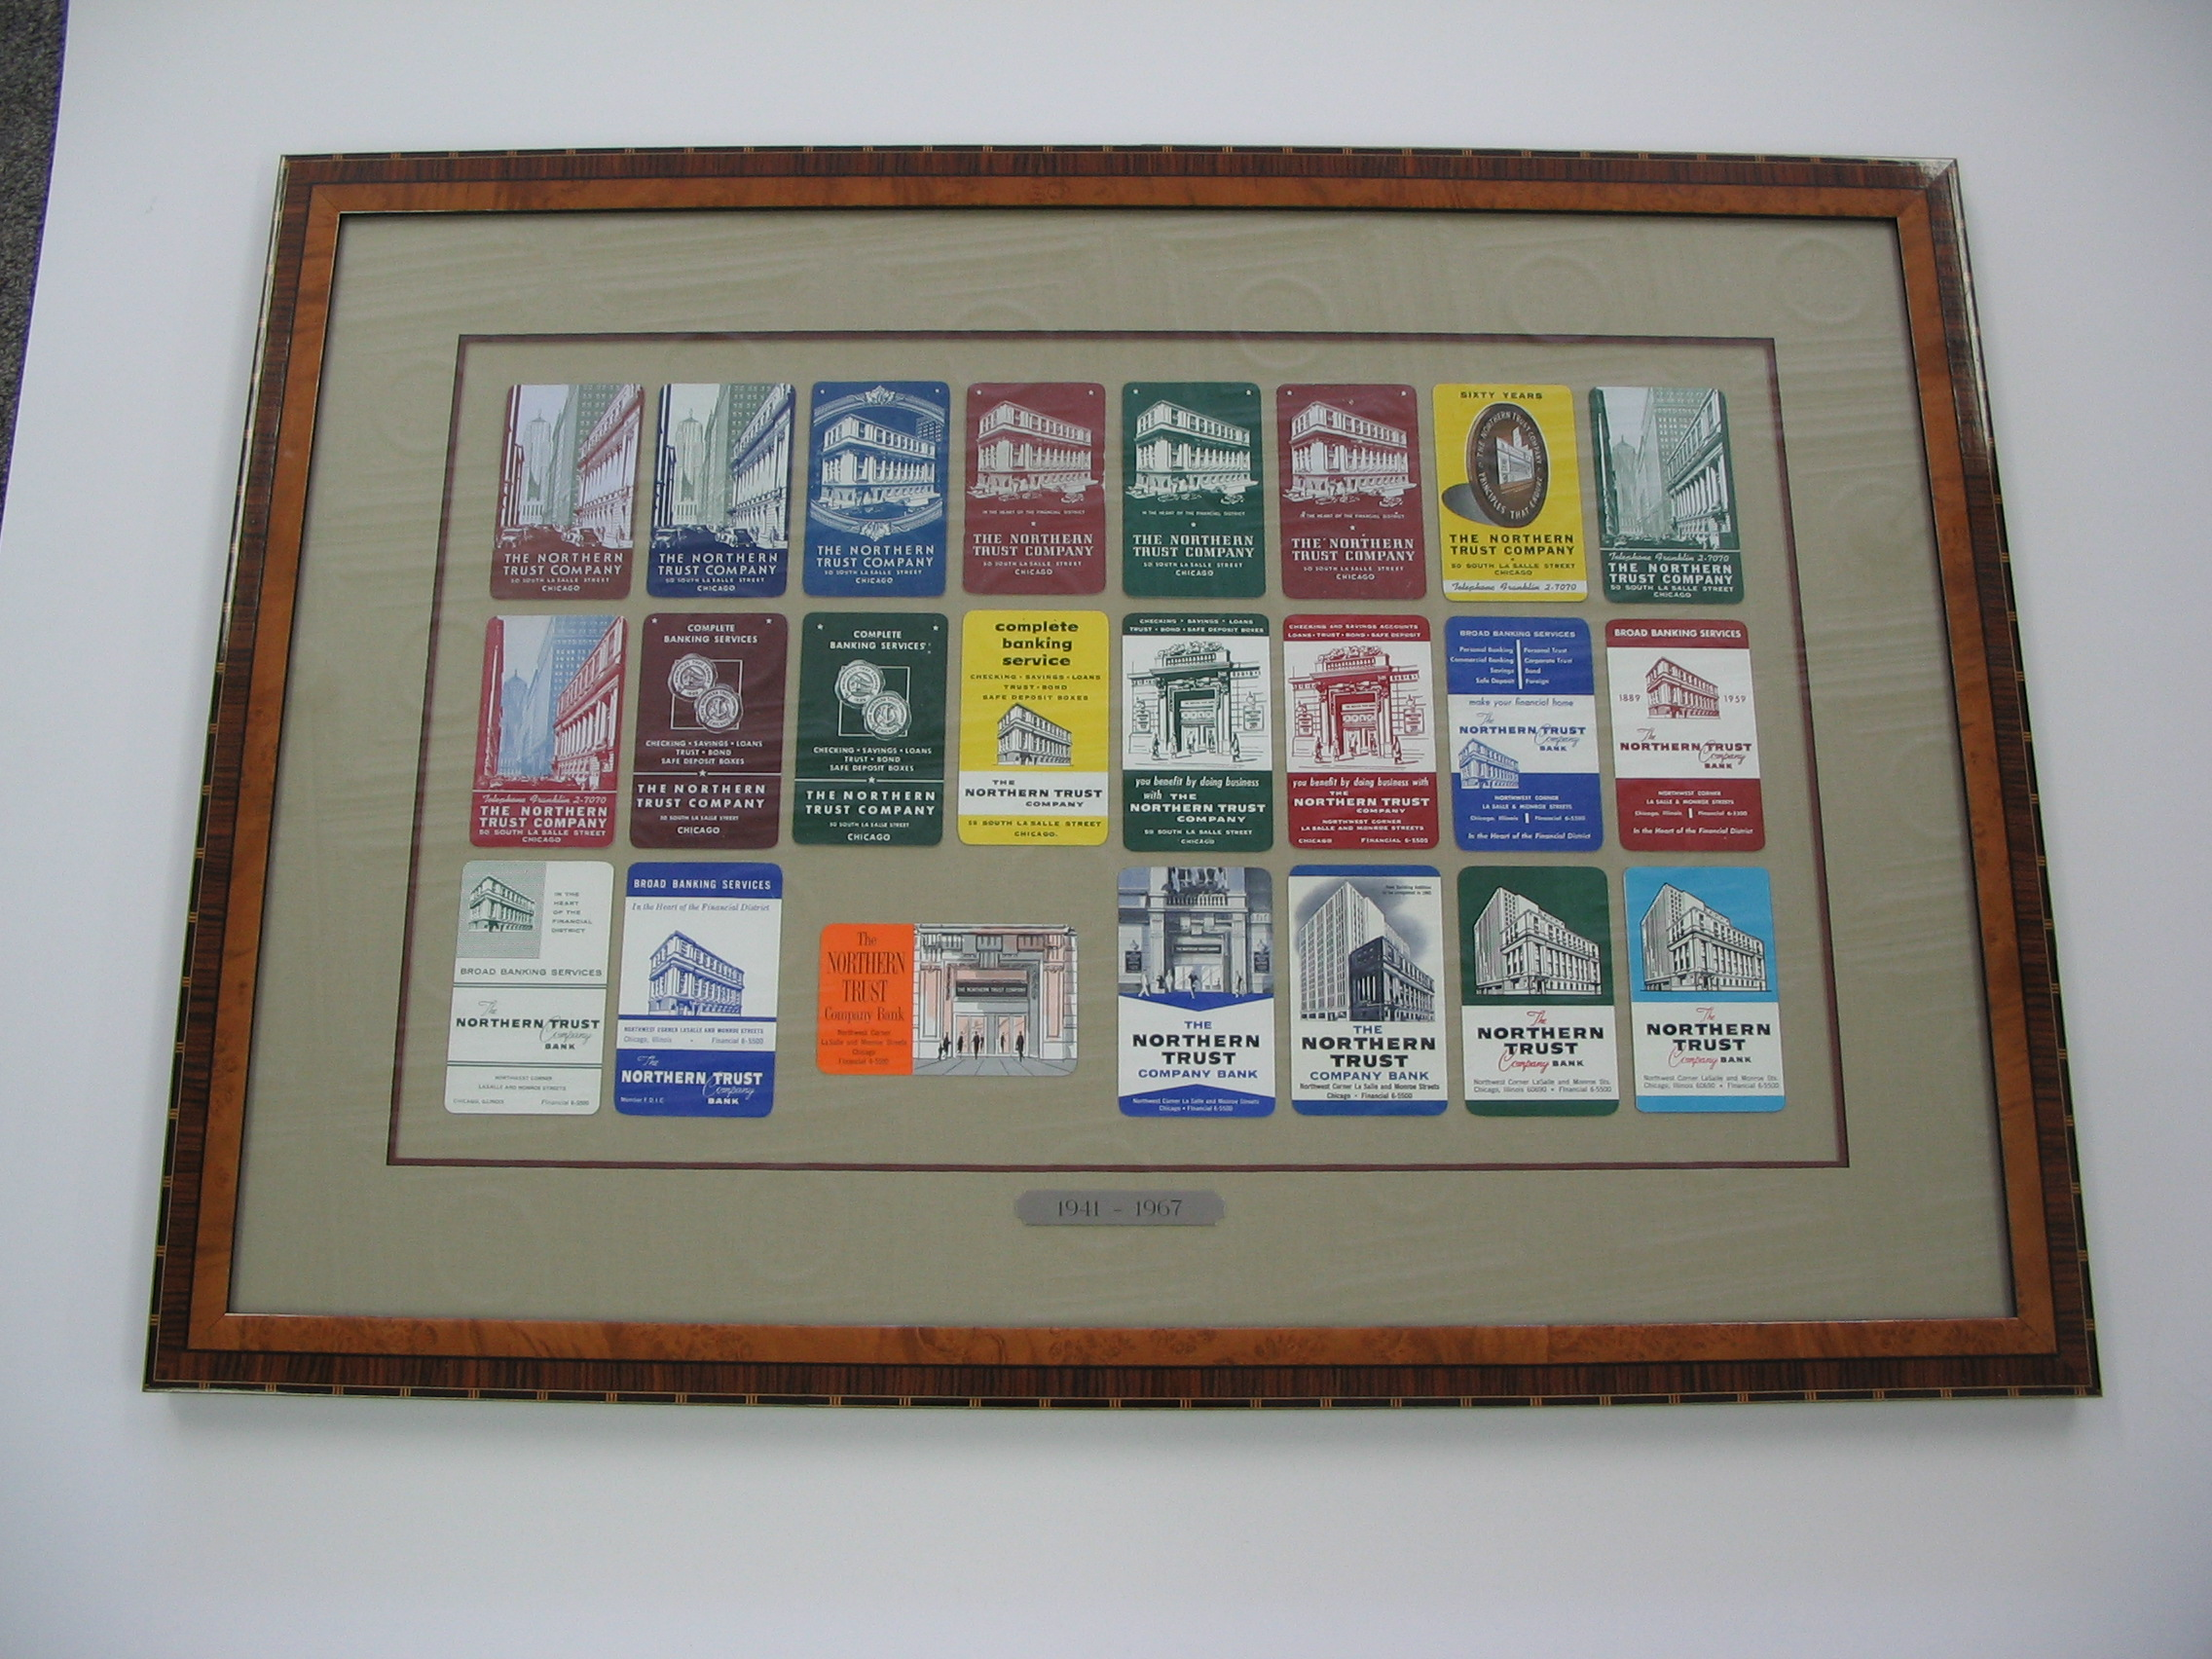 Train tickets framed by The Framemakers